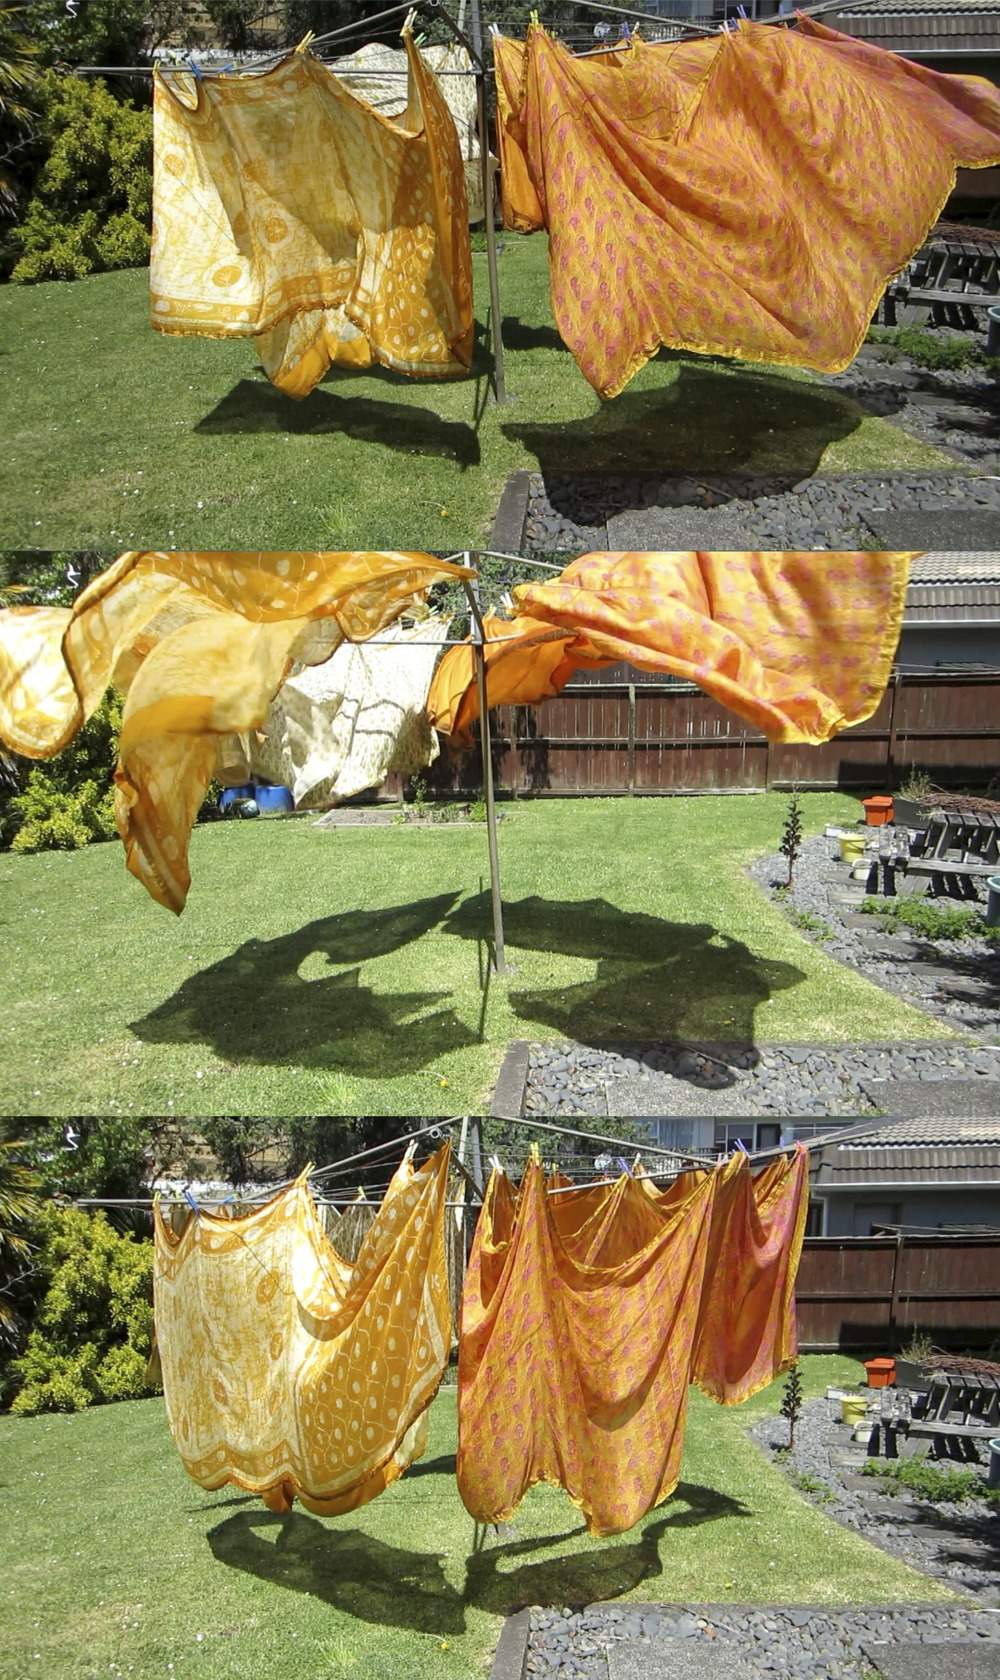 Brydee Rood, Wind Drawing Sunday, 10.11.2013 14:06, (still), Original HD video loop [duration 15:54] Site specific drawing with wind, vintage silk sarees and rotary washing line.